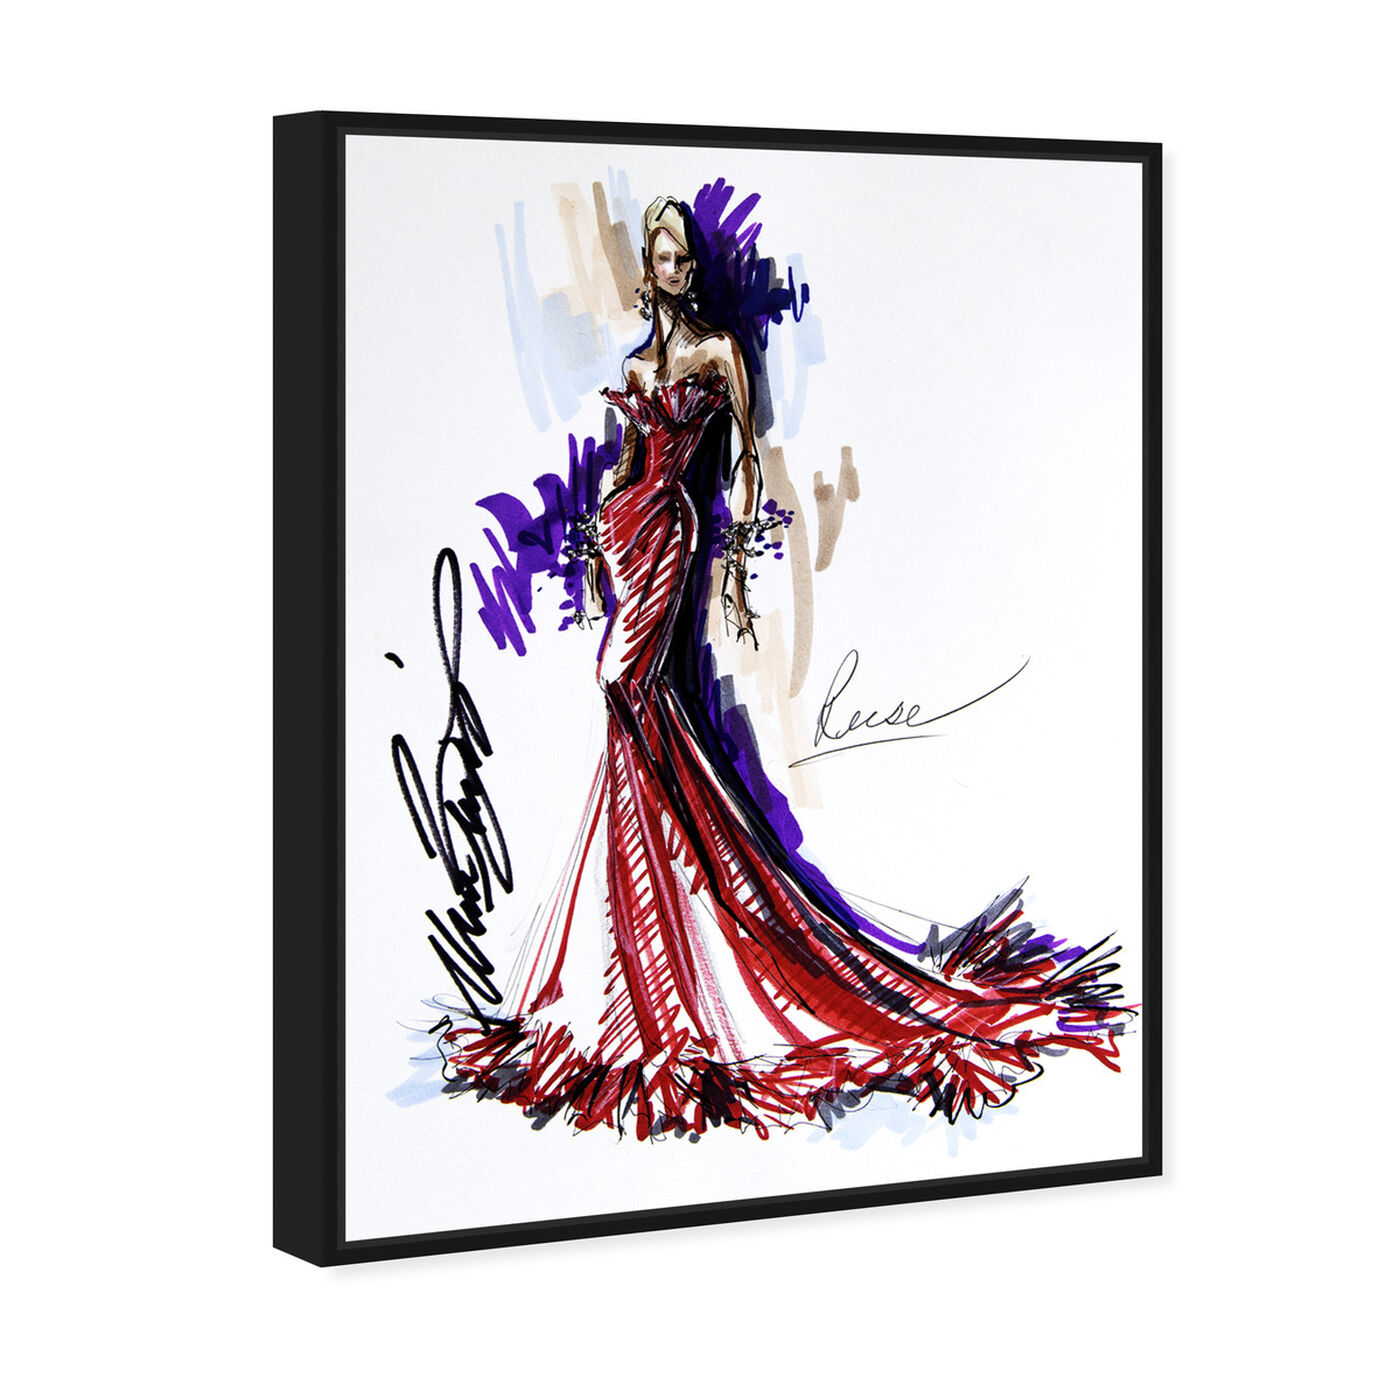 Angled view of Mark Zunino - Reese featuring fashion and glam and sketches art.